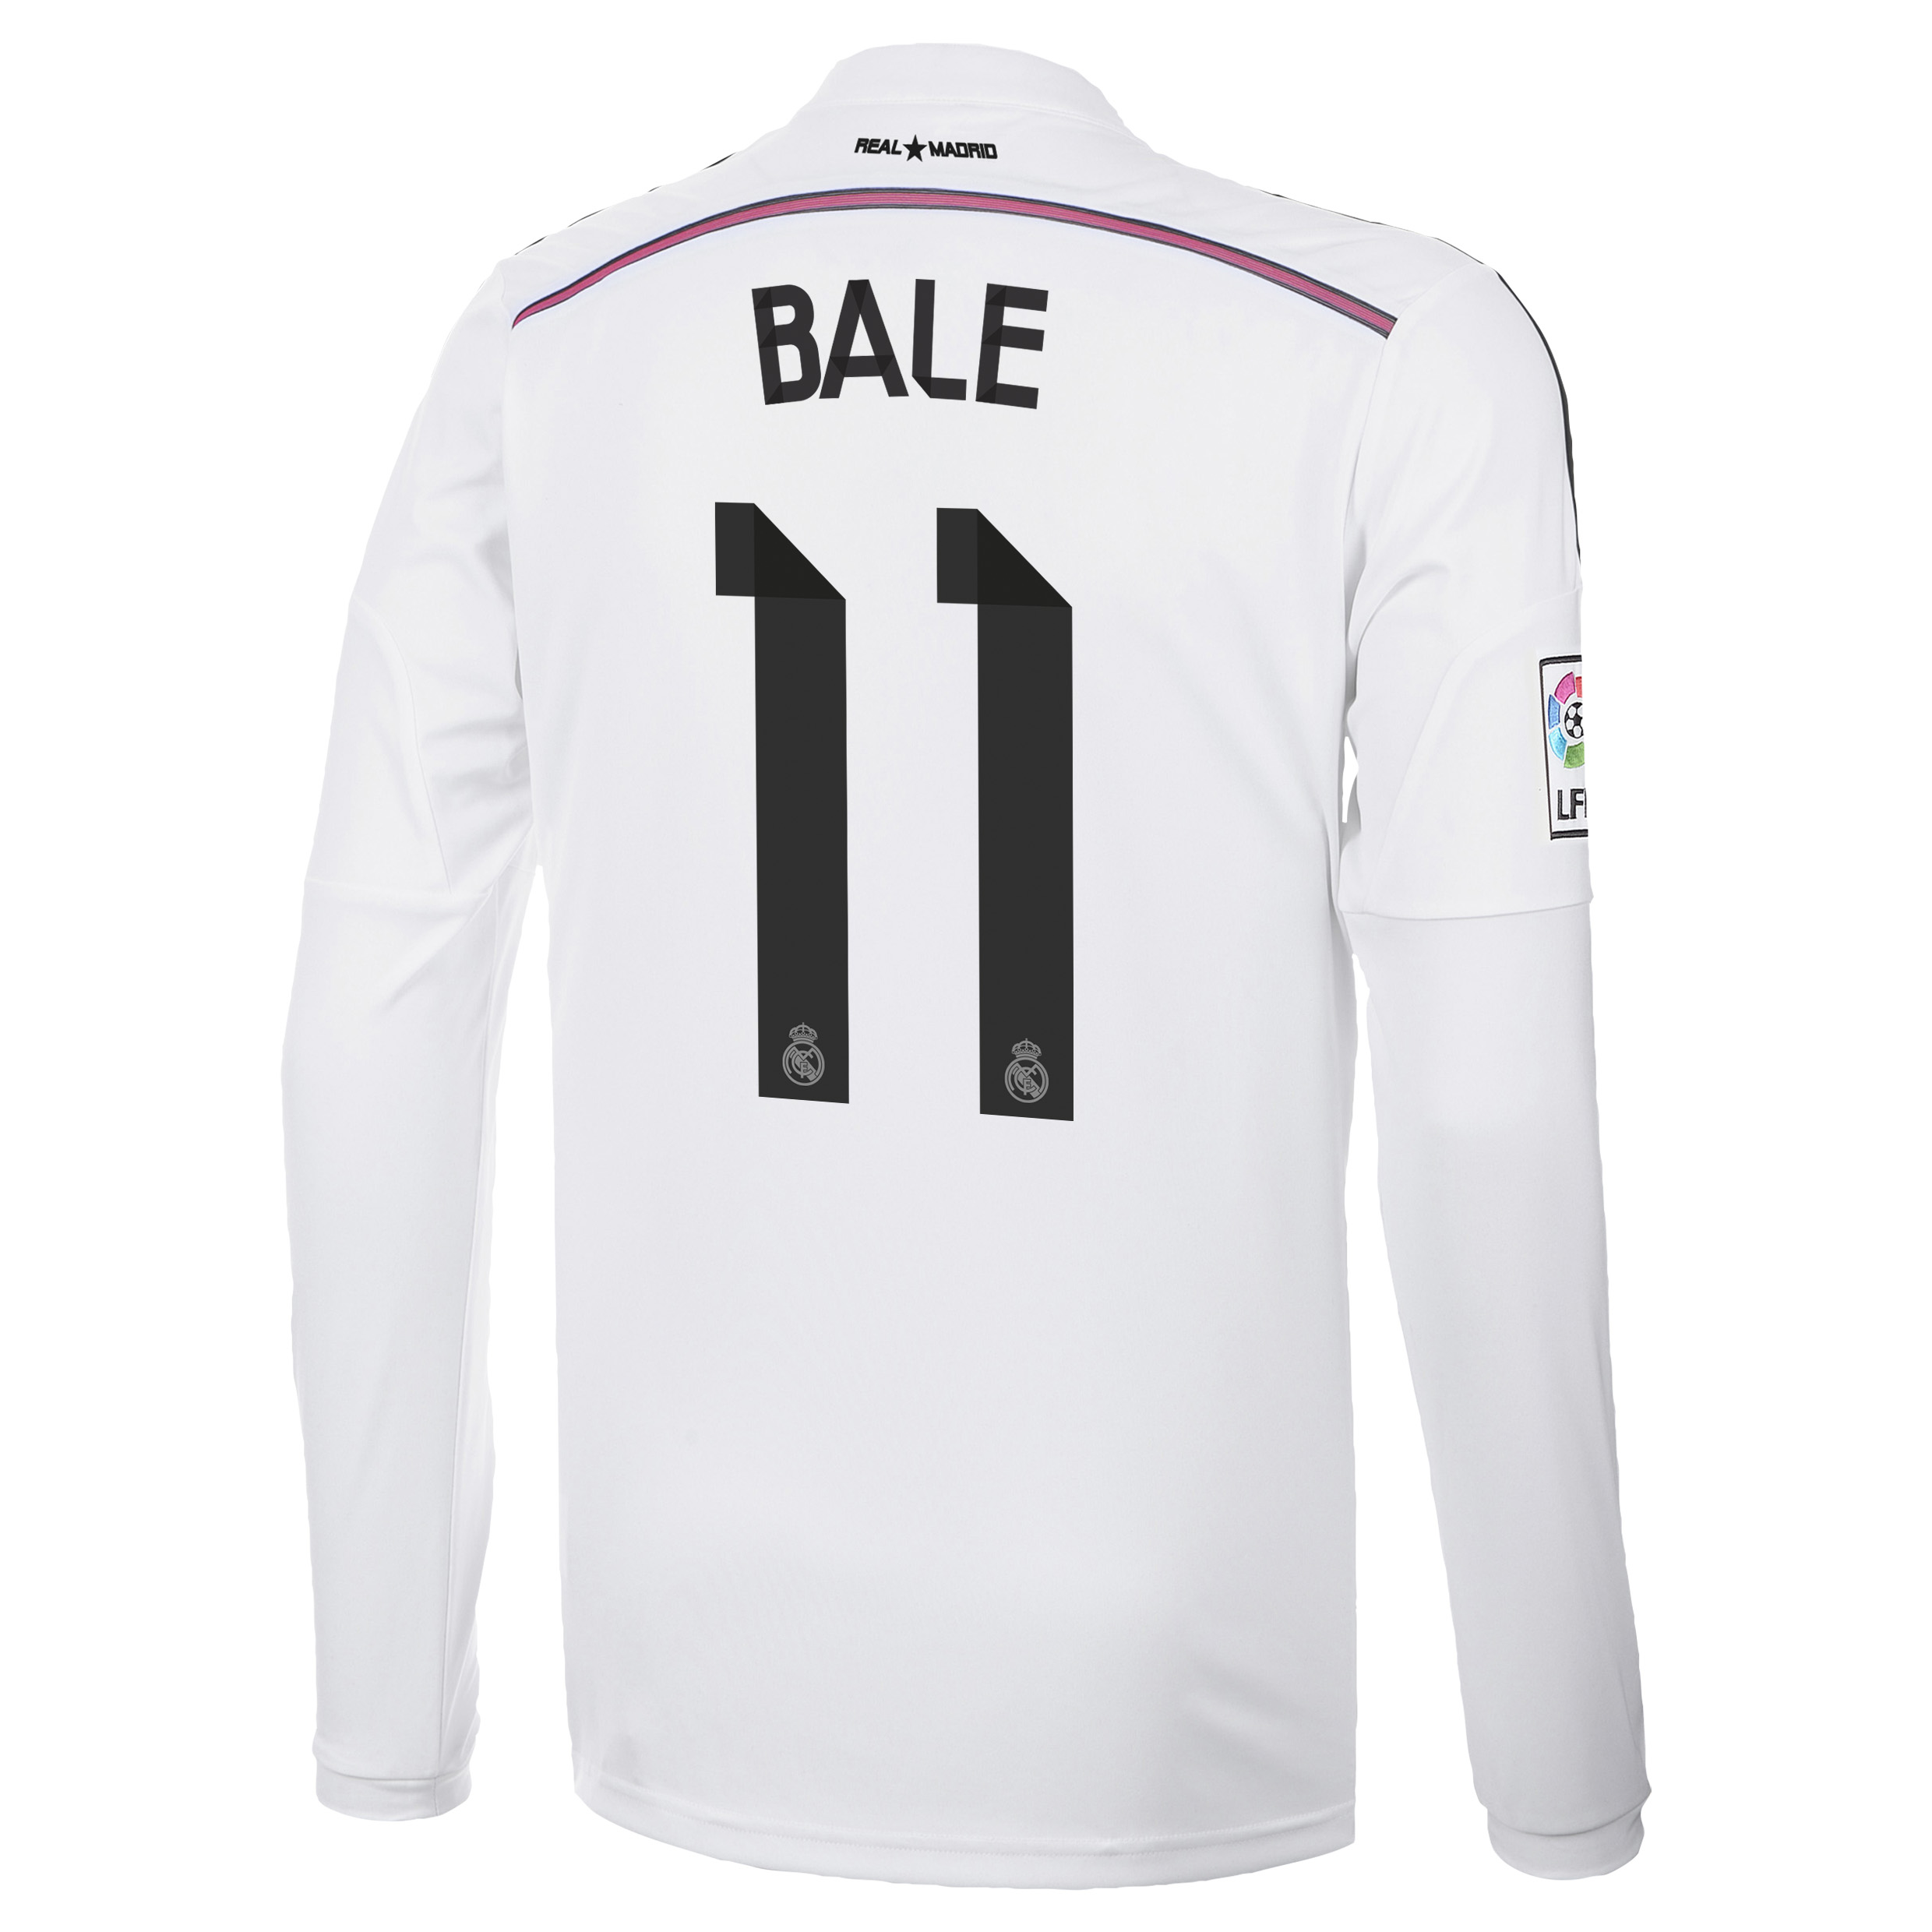 Real Madrid Home Shirt 2014/15 Long Sleeve with Bale 11 printing